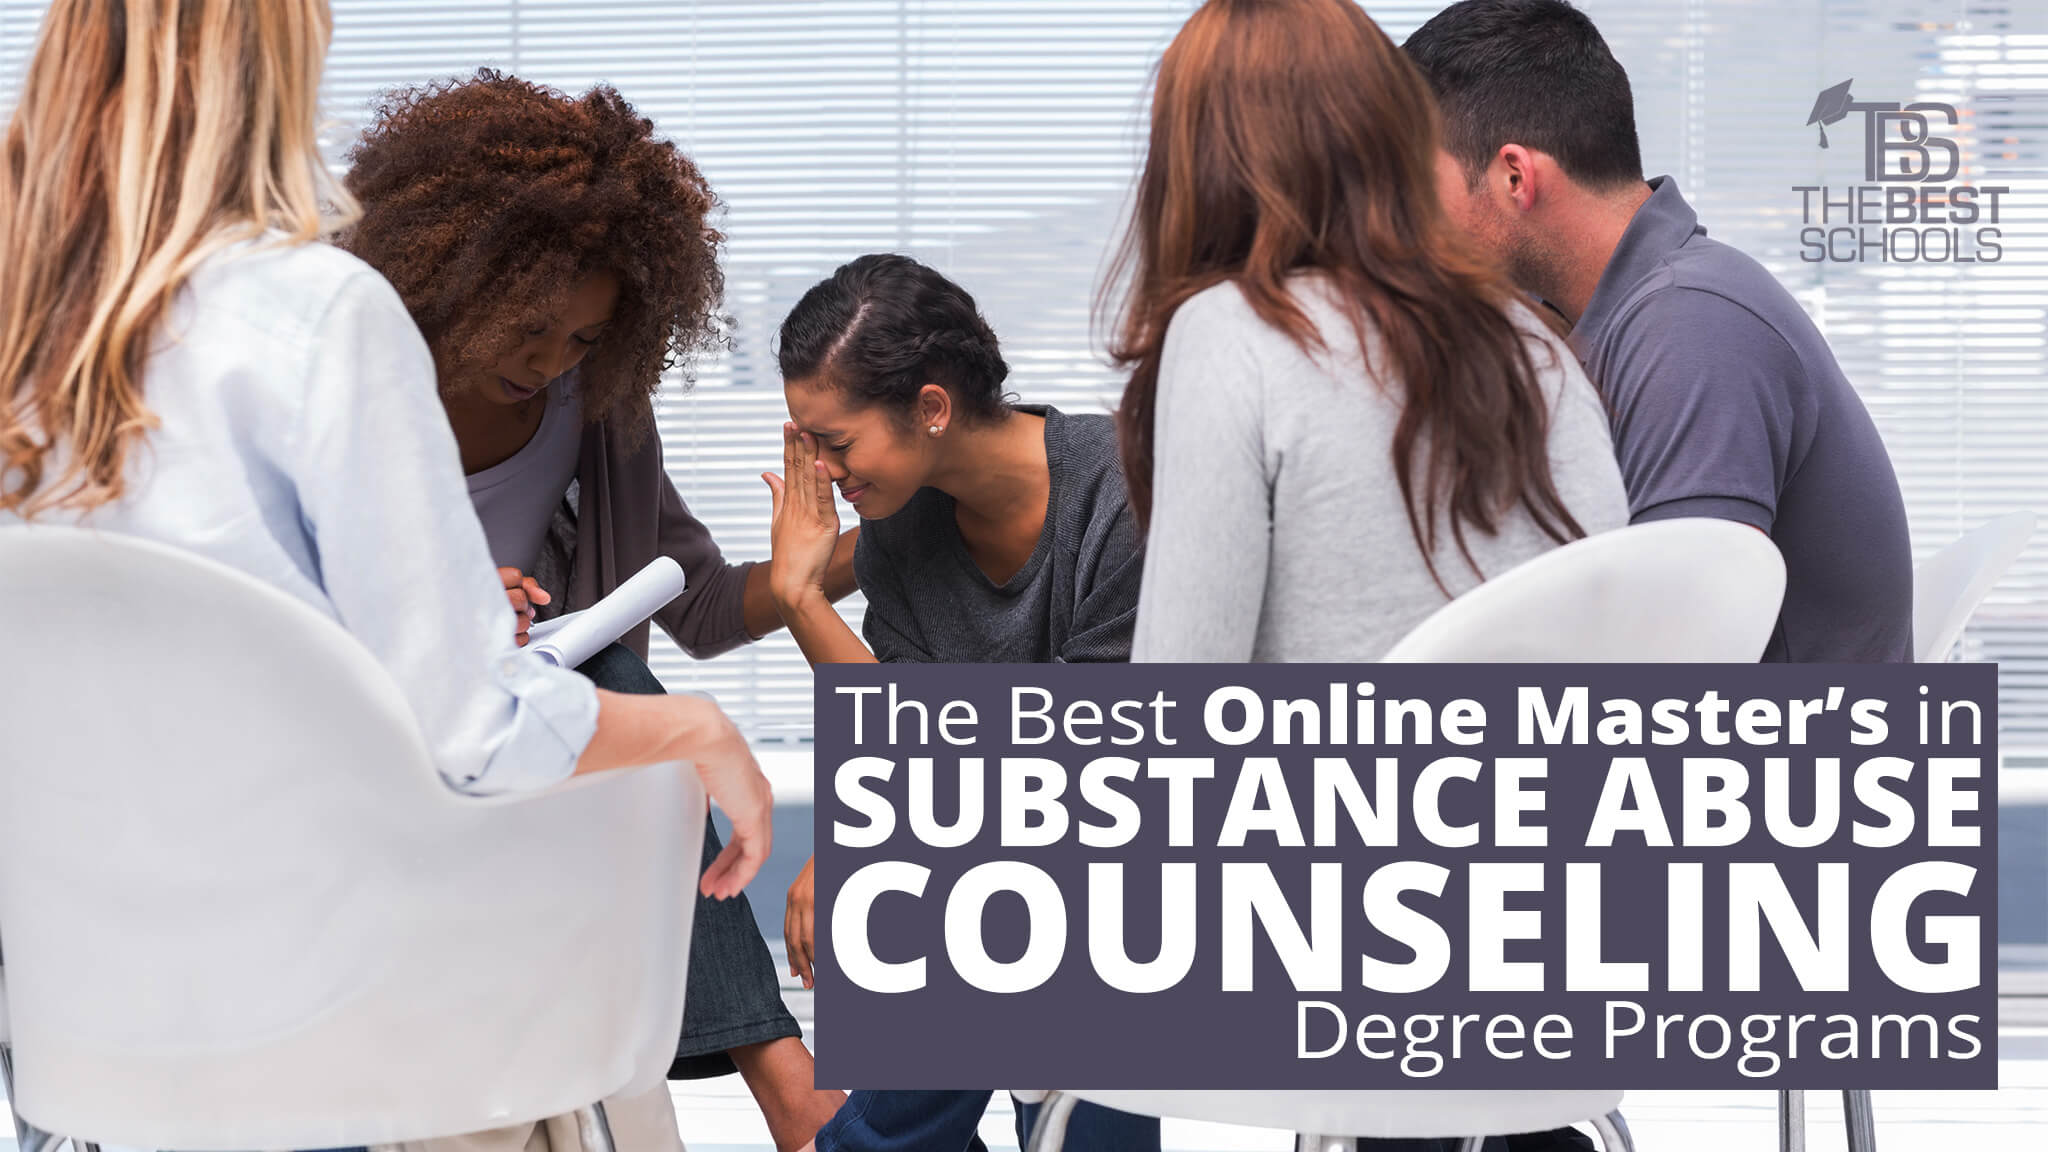 The Best Online Master's in Substance Abuse Counseling